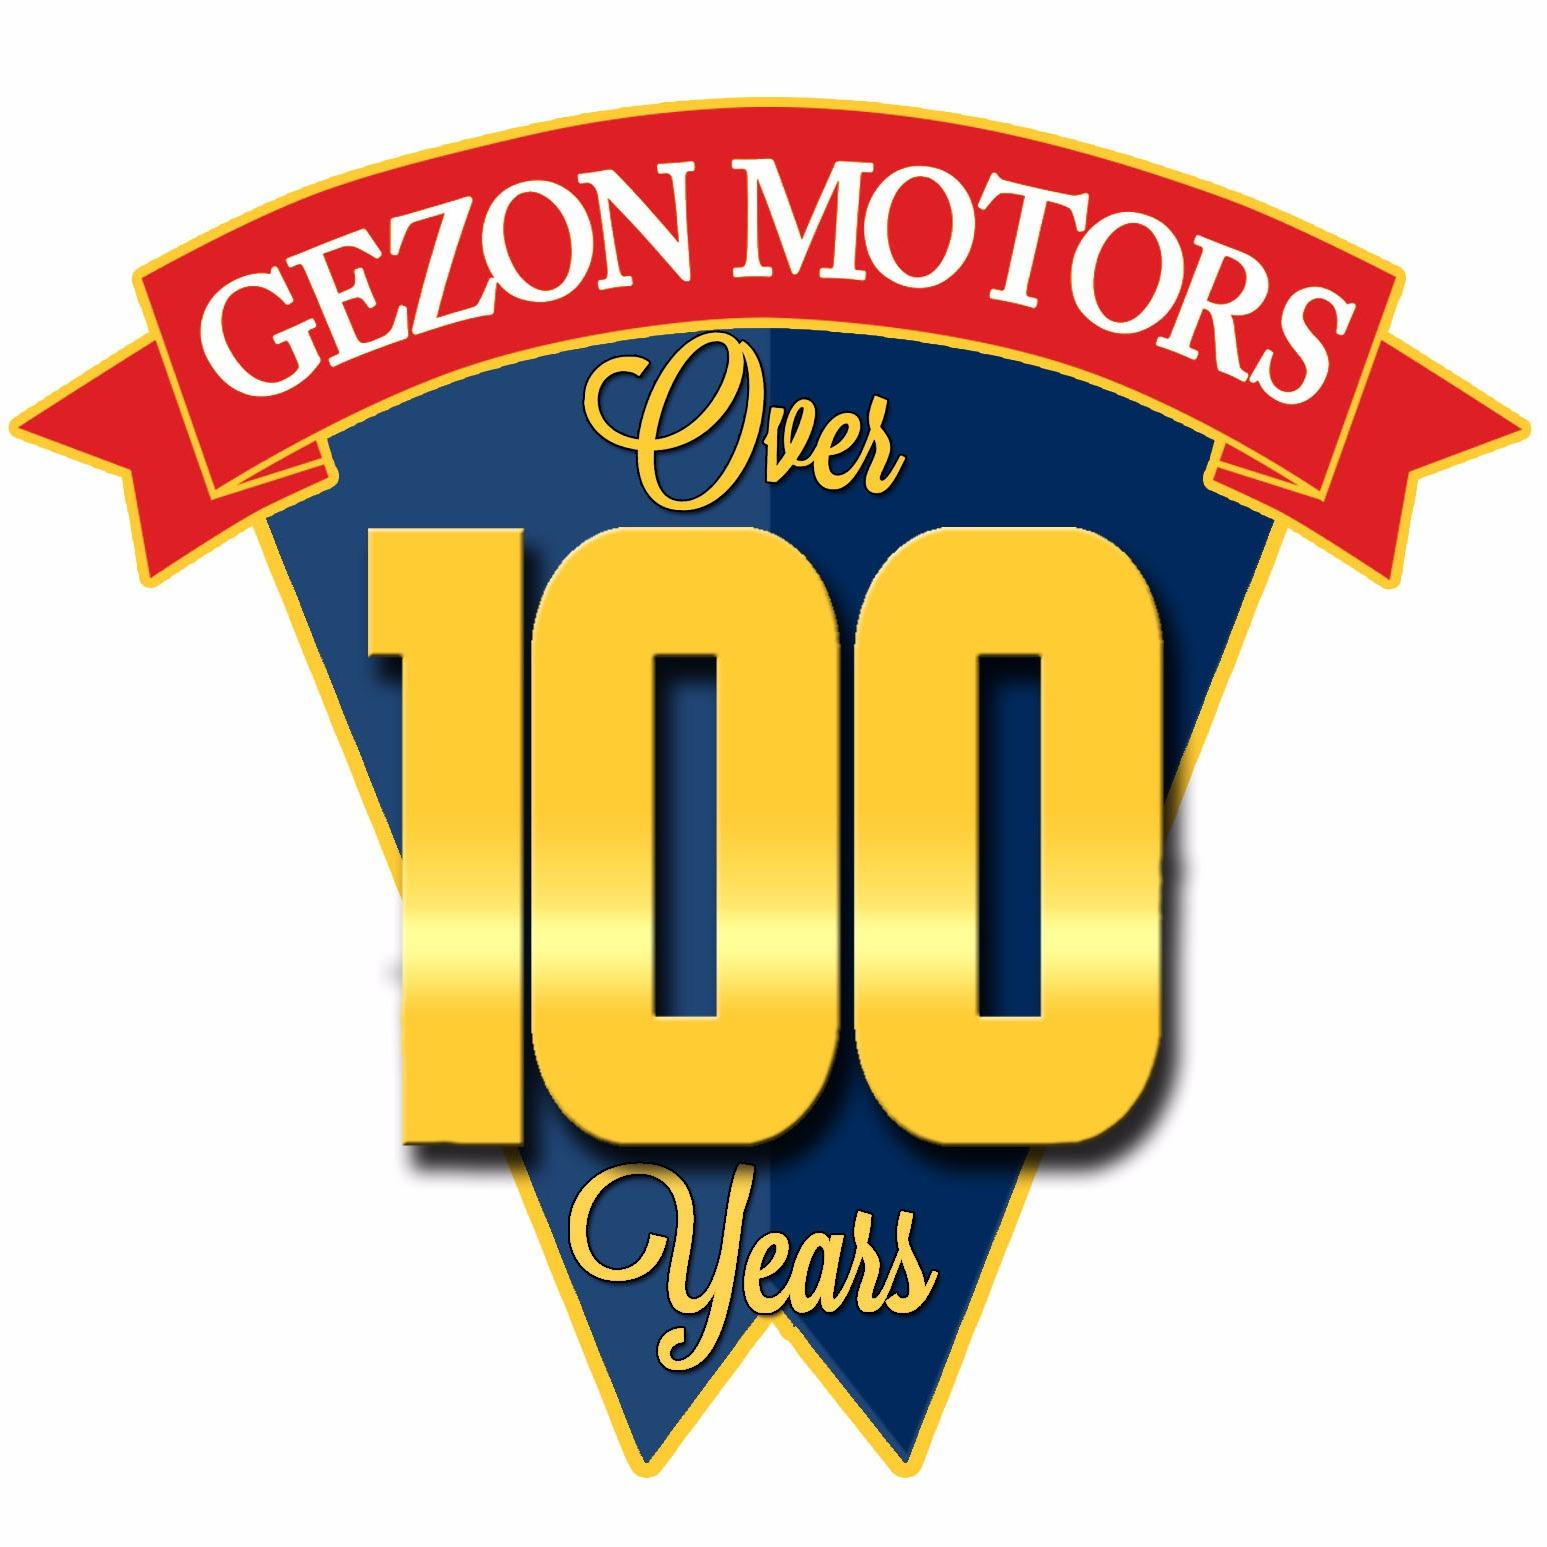 Gezon Nissan In Grand Rapids Mi Auto Dealers Yellow Pages Directory Inc